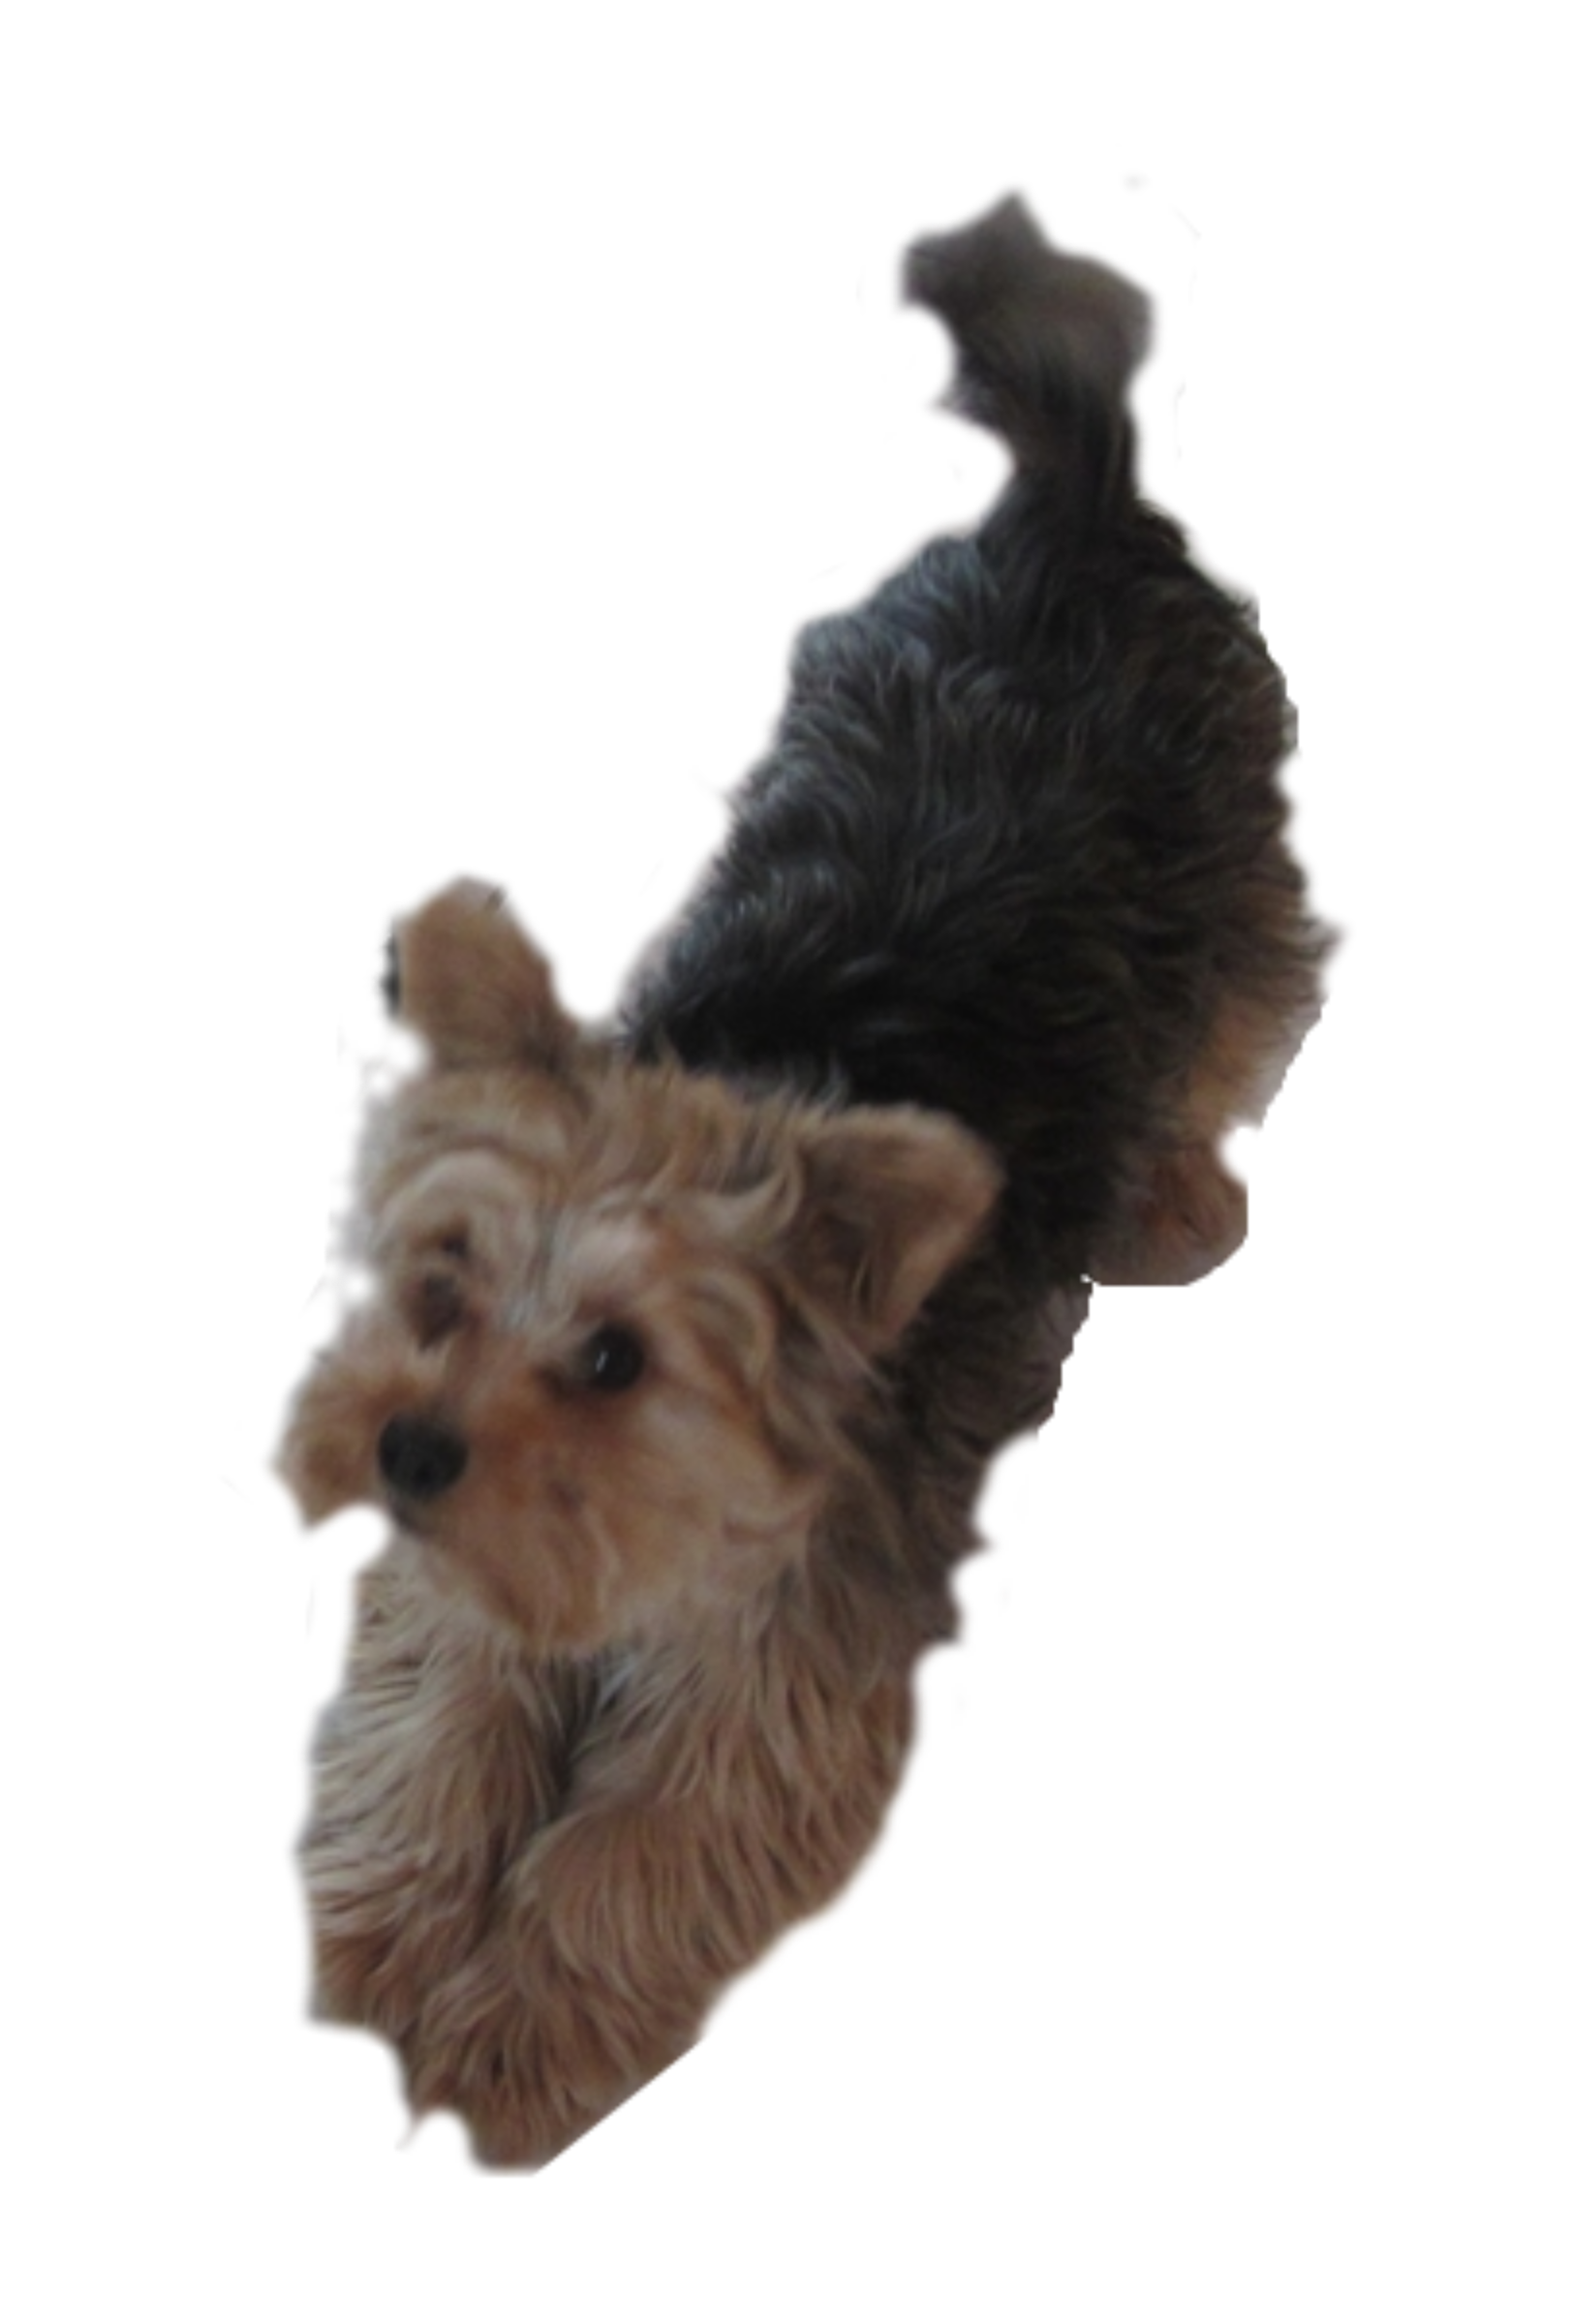 clip transparent download Yorkie clipart. Dog pleading big image.